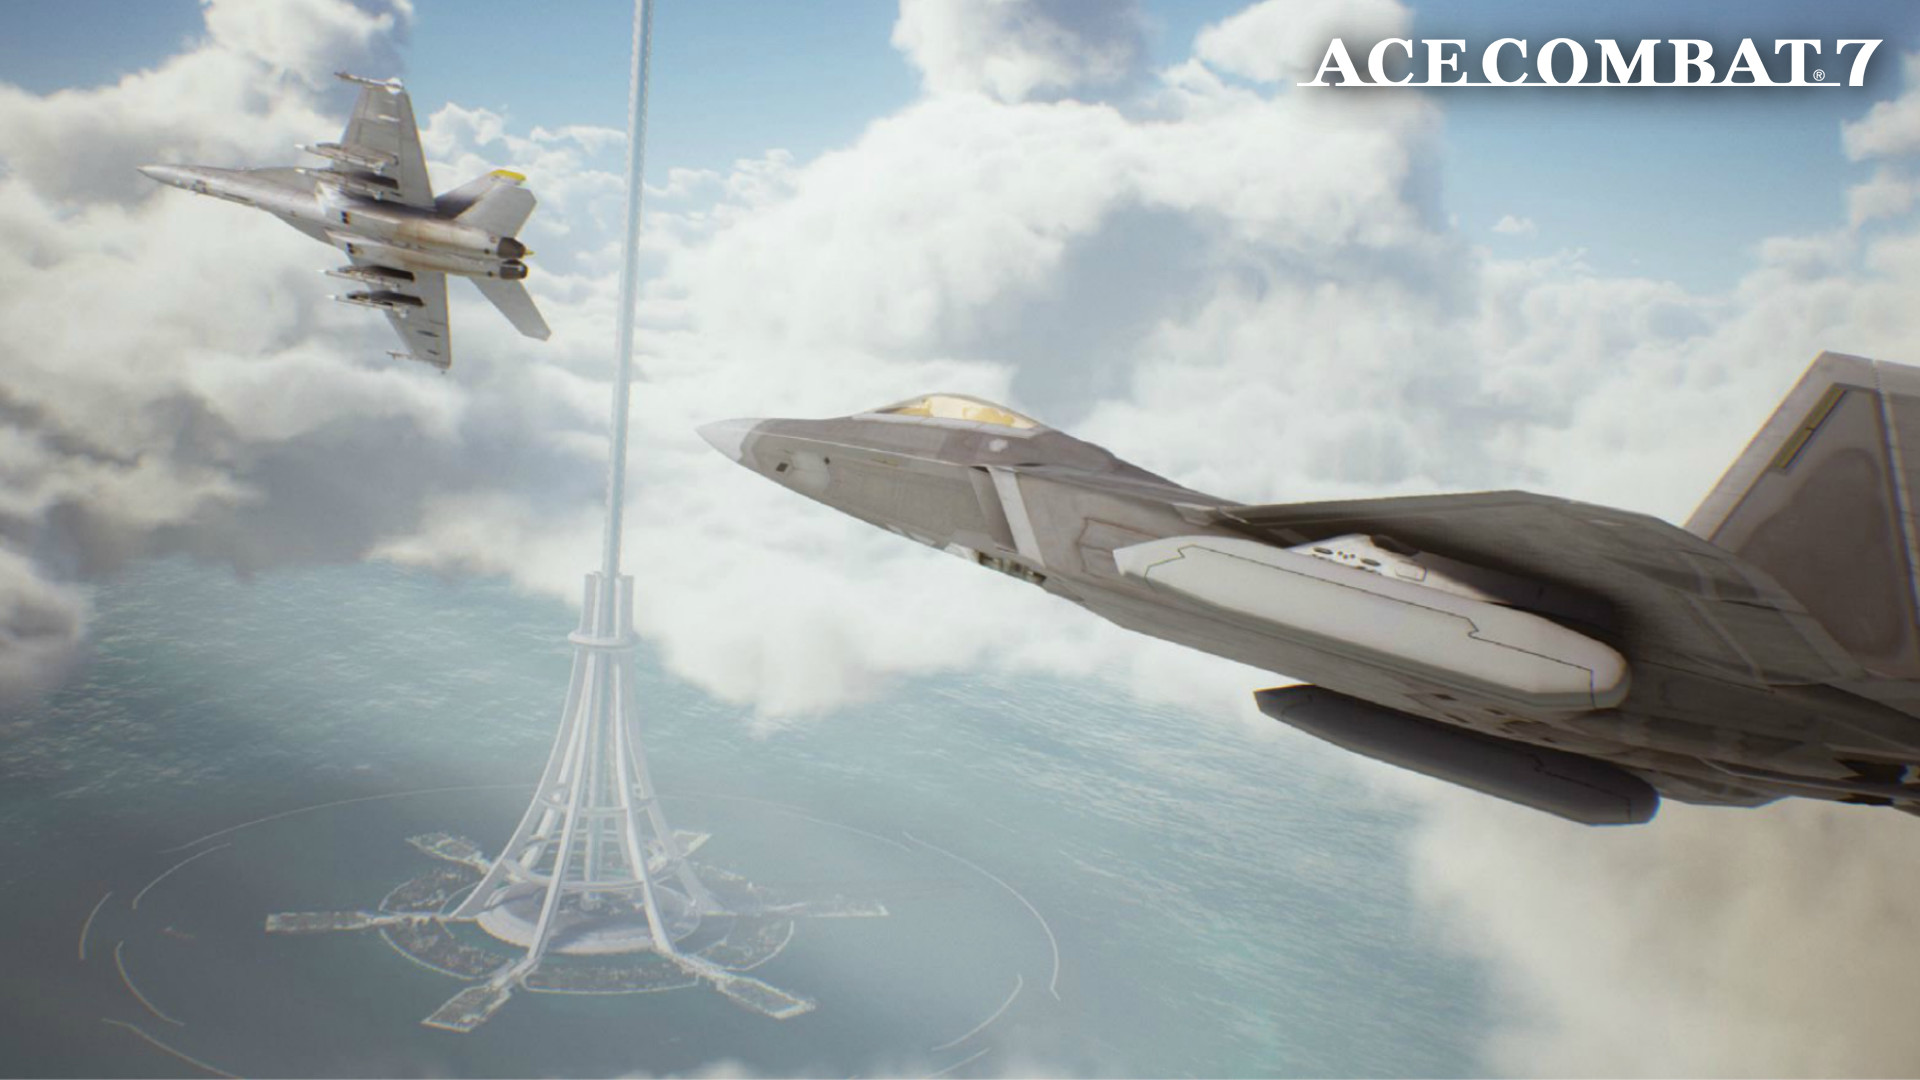 Res: 1920x1080, ... Ace Combat 7 - Lighthouse Wallpaper by Azekthi